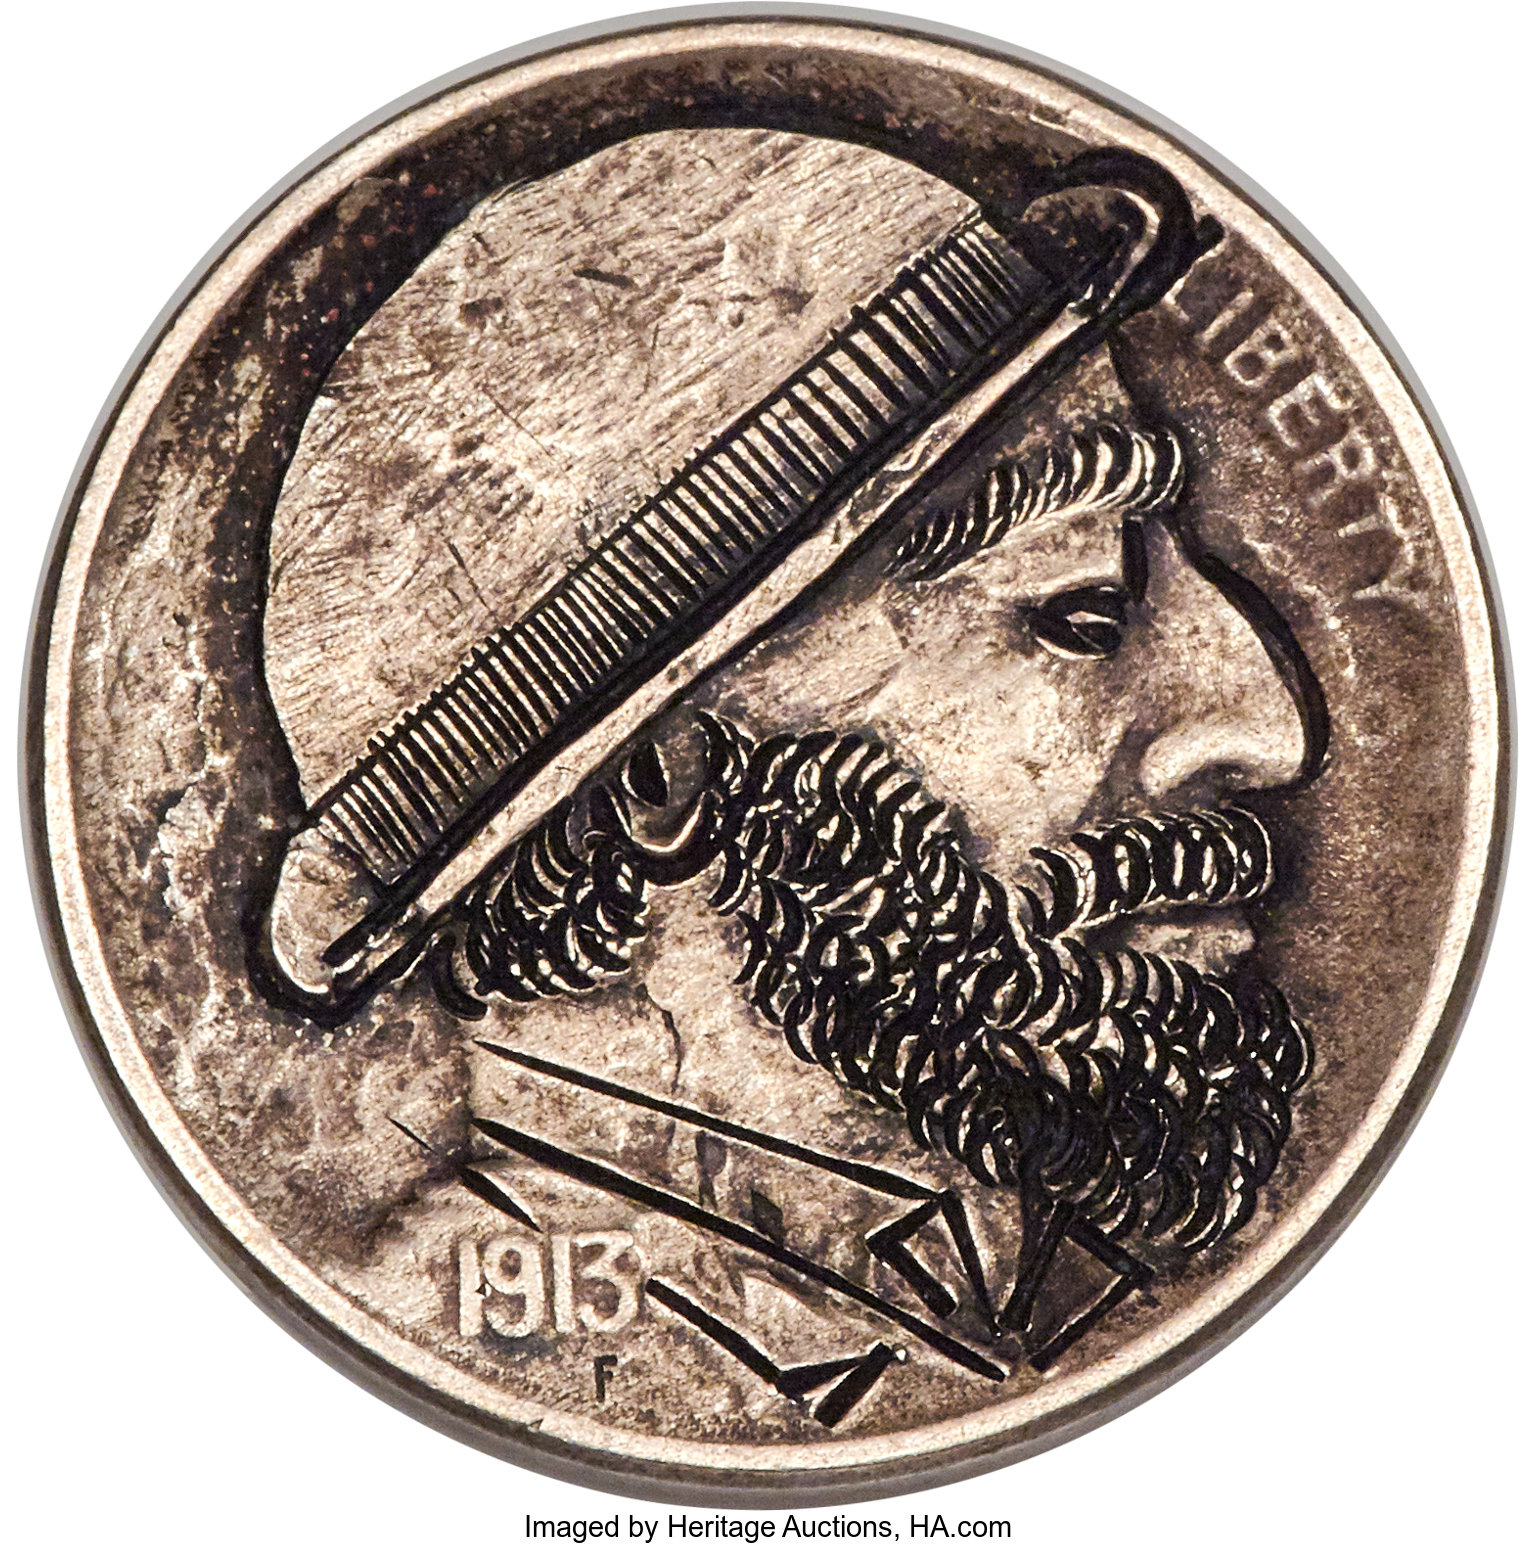 Heritage Auctions Search, Hobo Nickels [51 790 231 351]